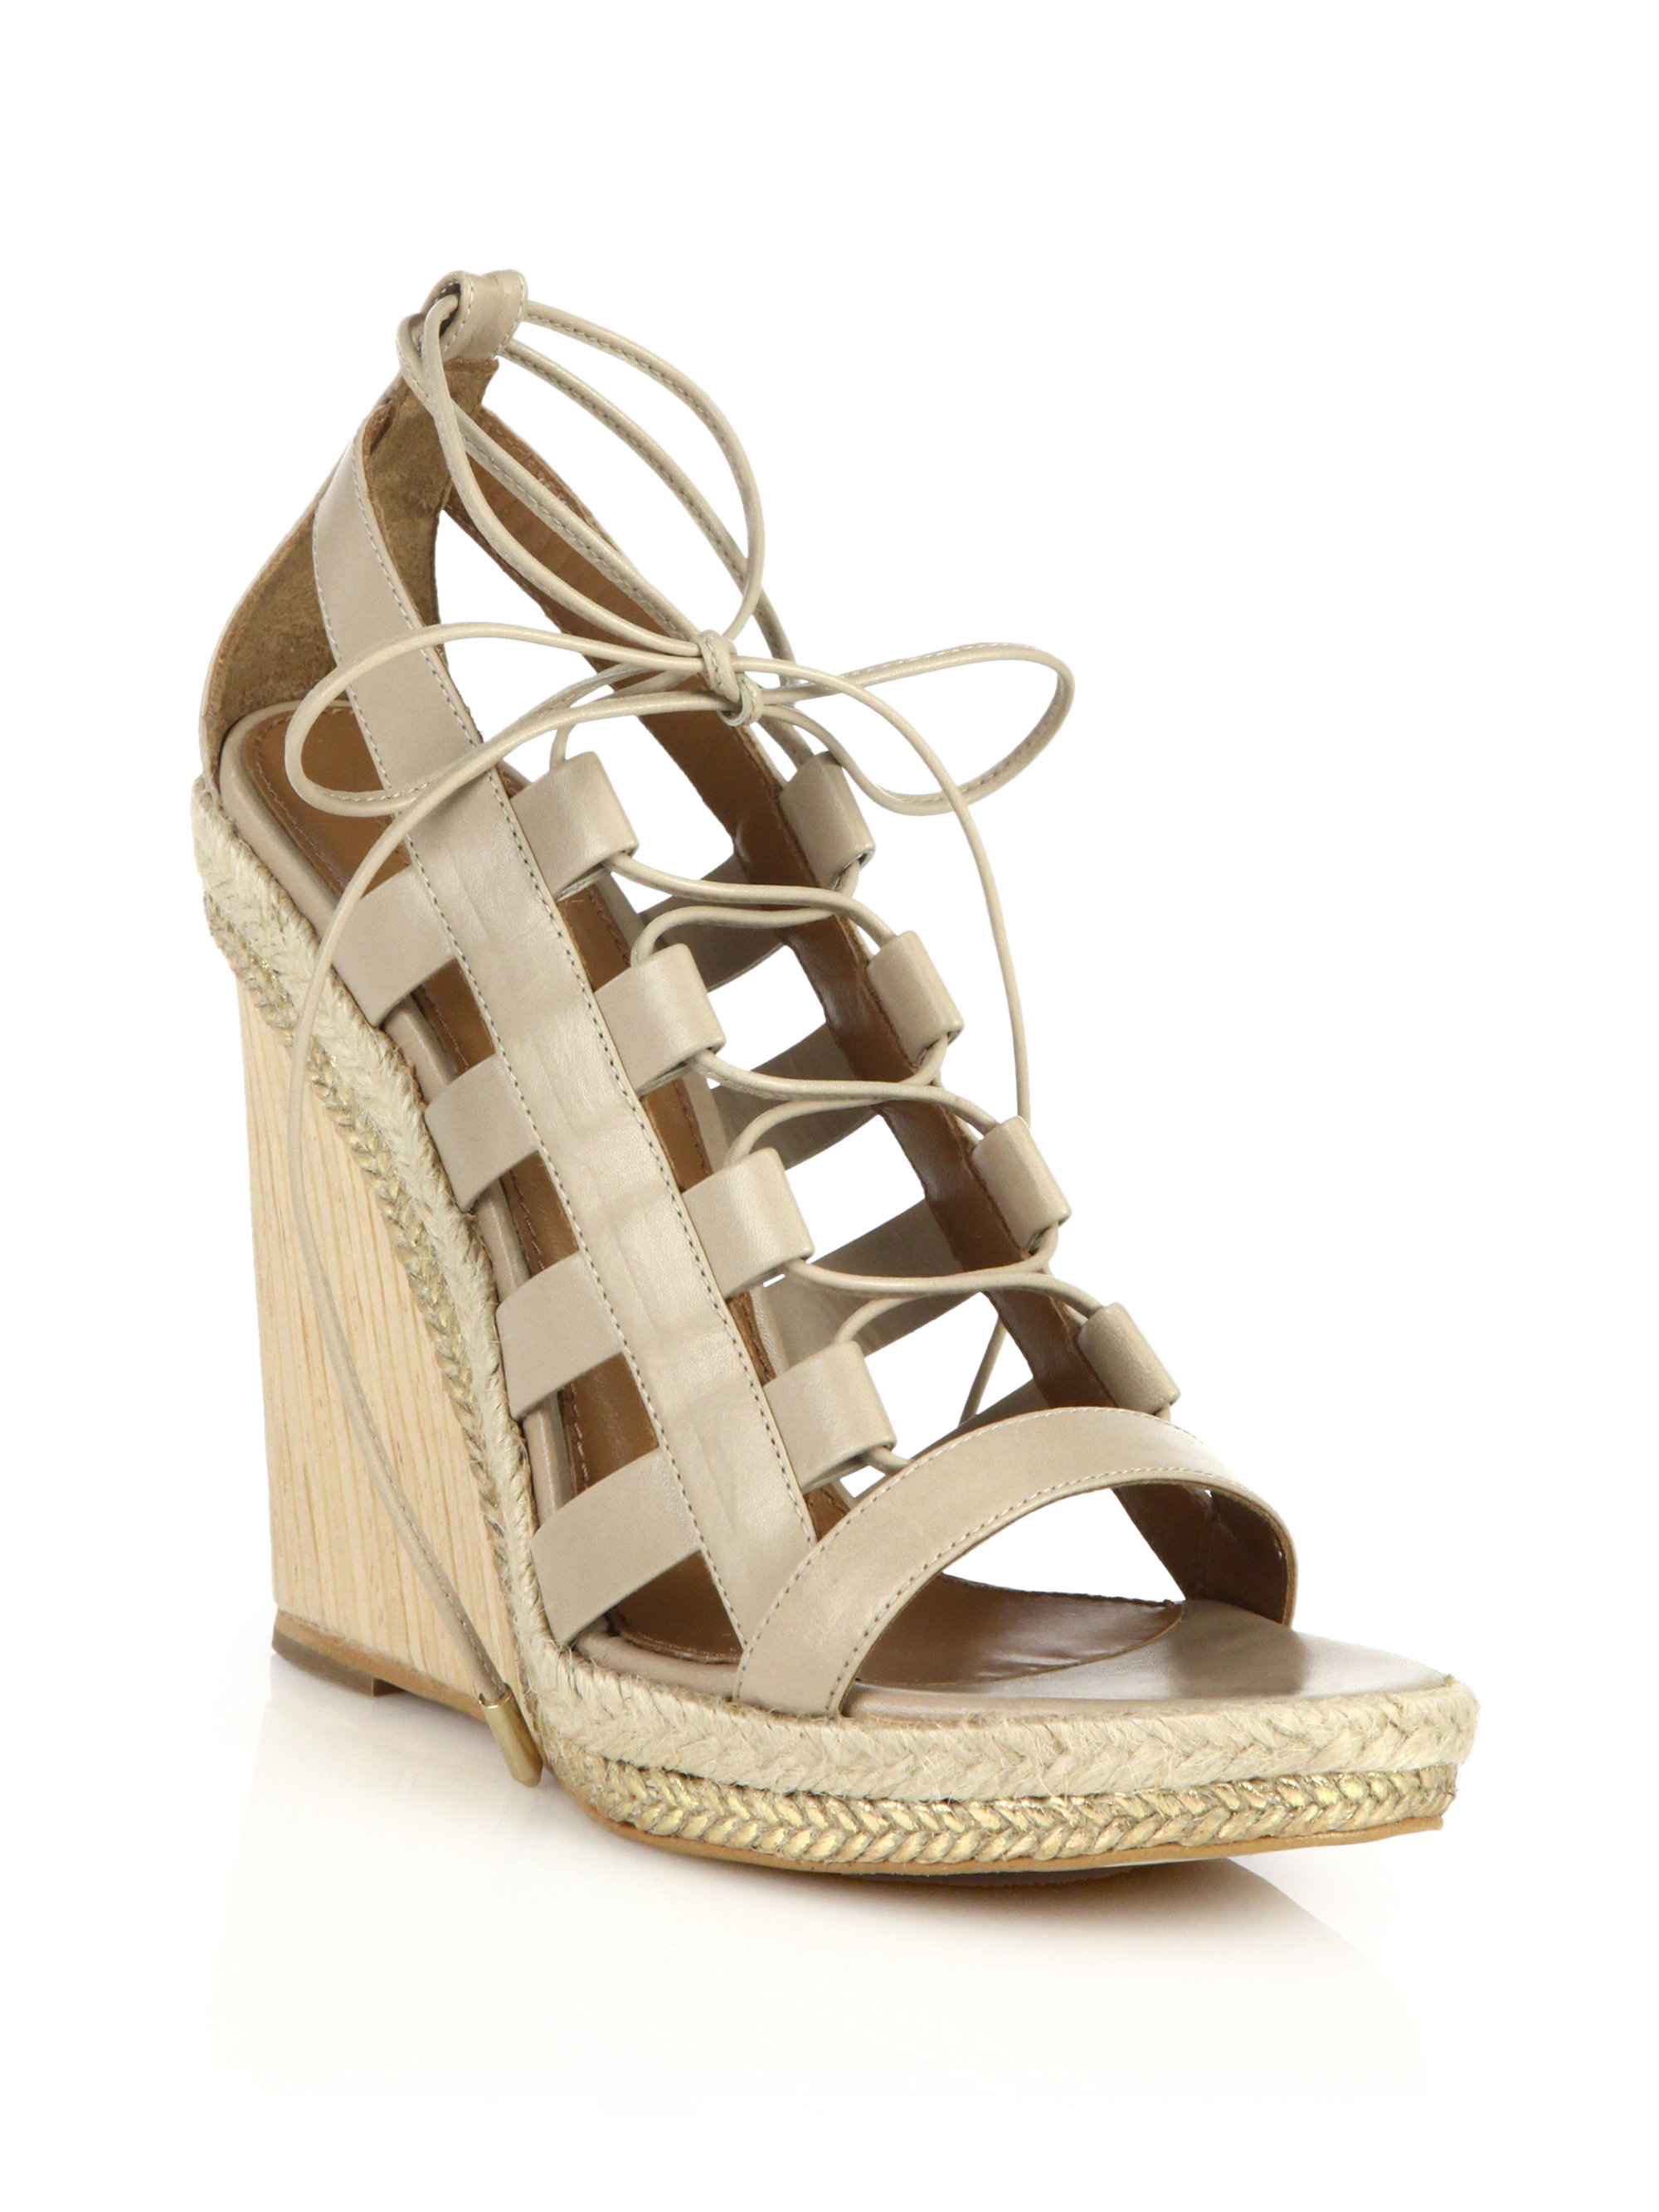 Lyst - Aquazzura Amazon Espadrille & Wooden-Wedge Lace-Up ...